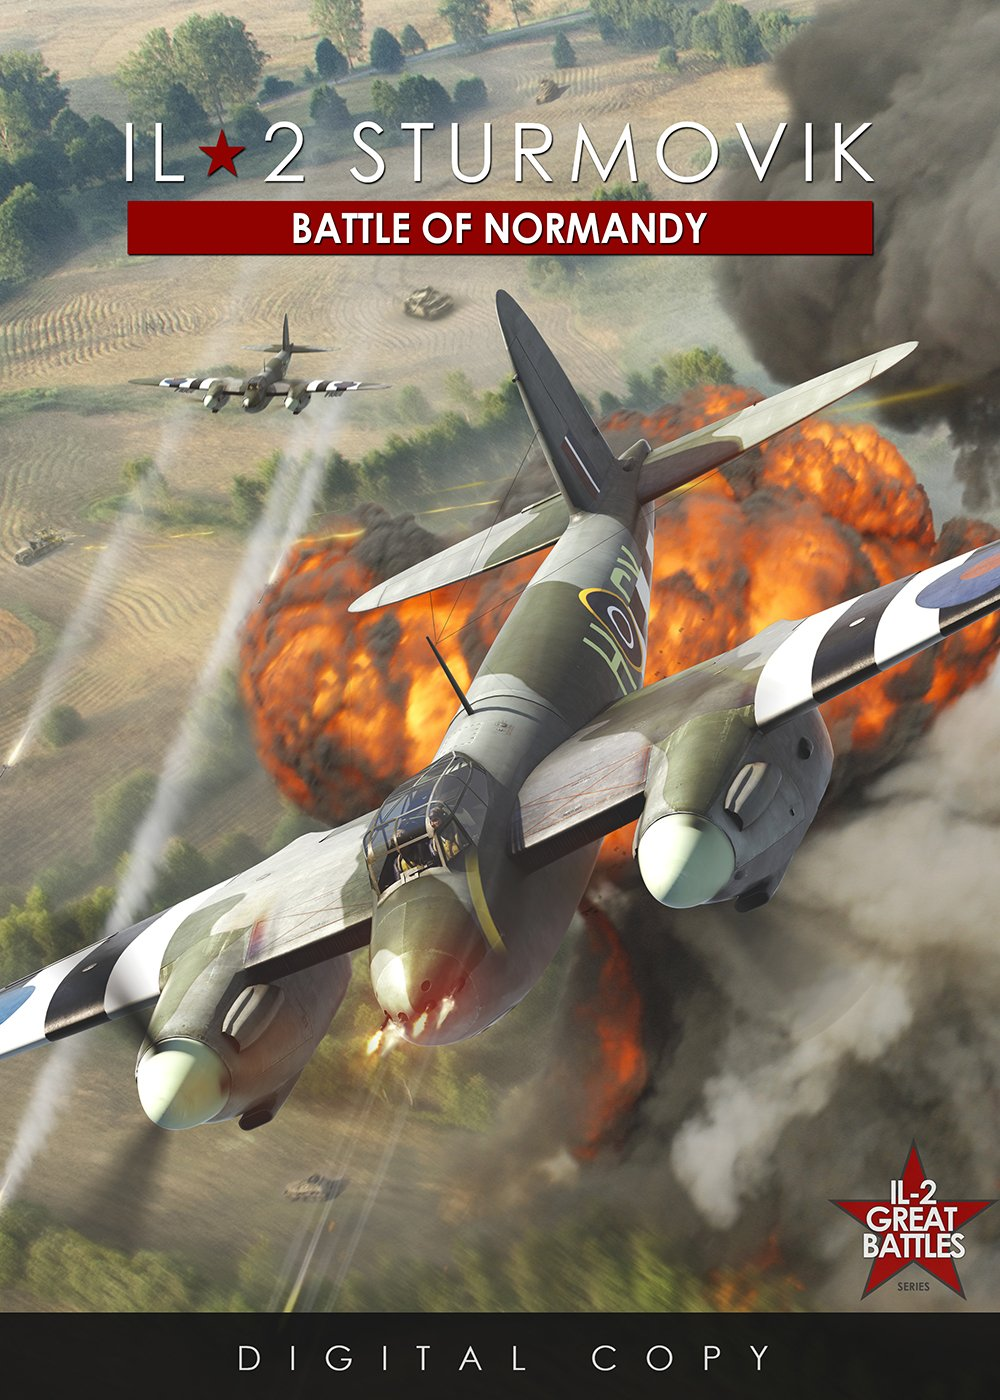 IL2 Battle of Normandy IL-2_Battle_of_Normandy_EN.jpg.70d70ca6cbfd2db744005a0e5a305e08